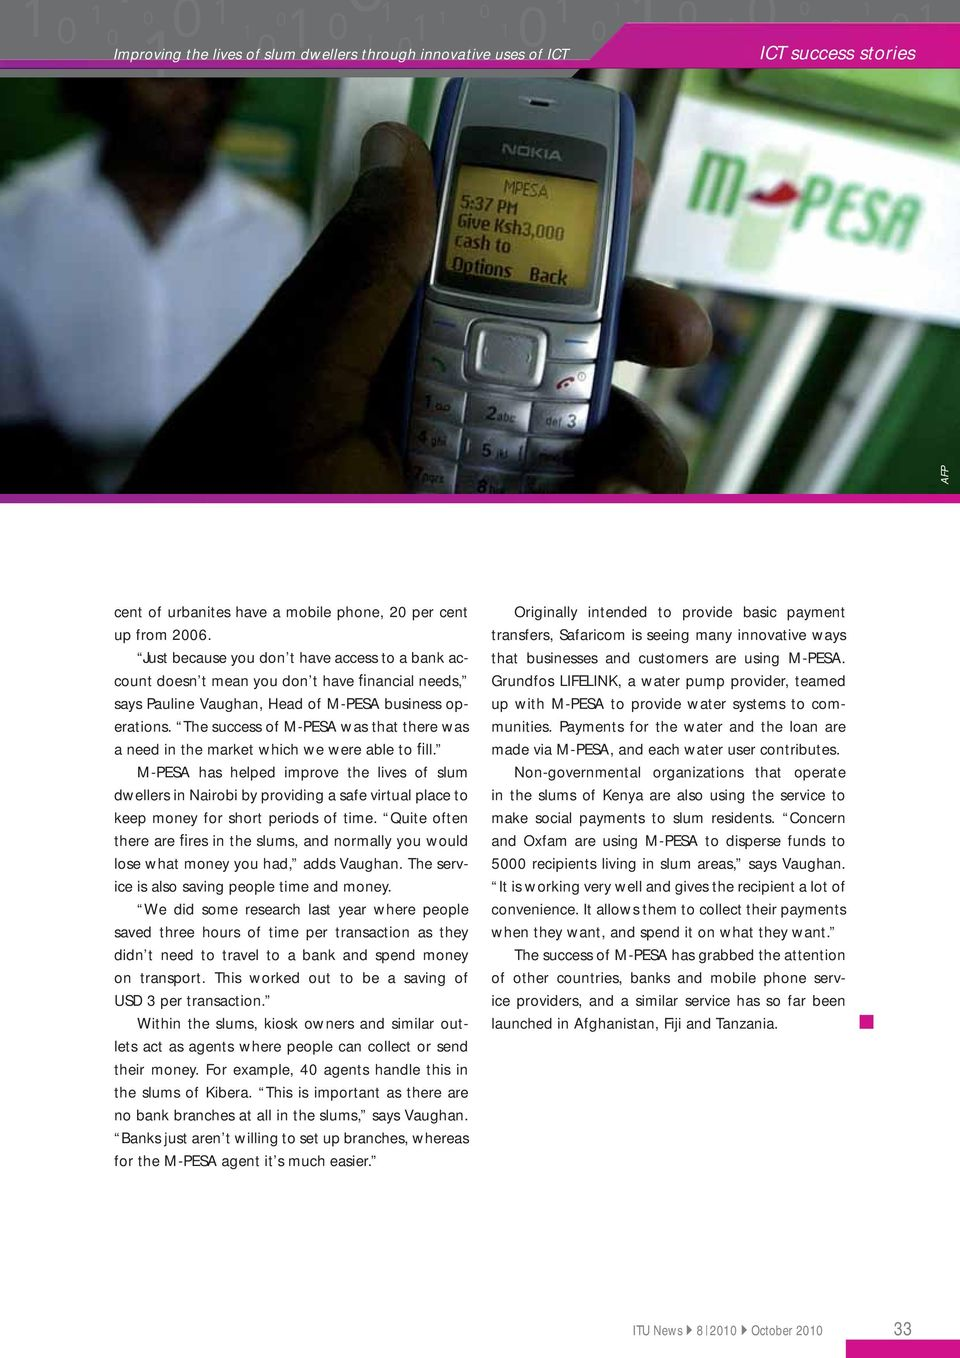 The success of M-PESA was that there was a need in the market which we were able to fill.